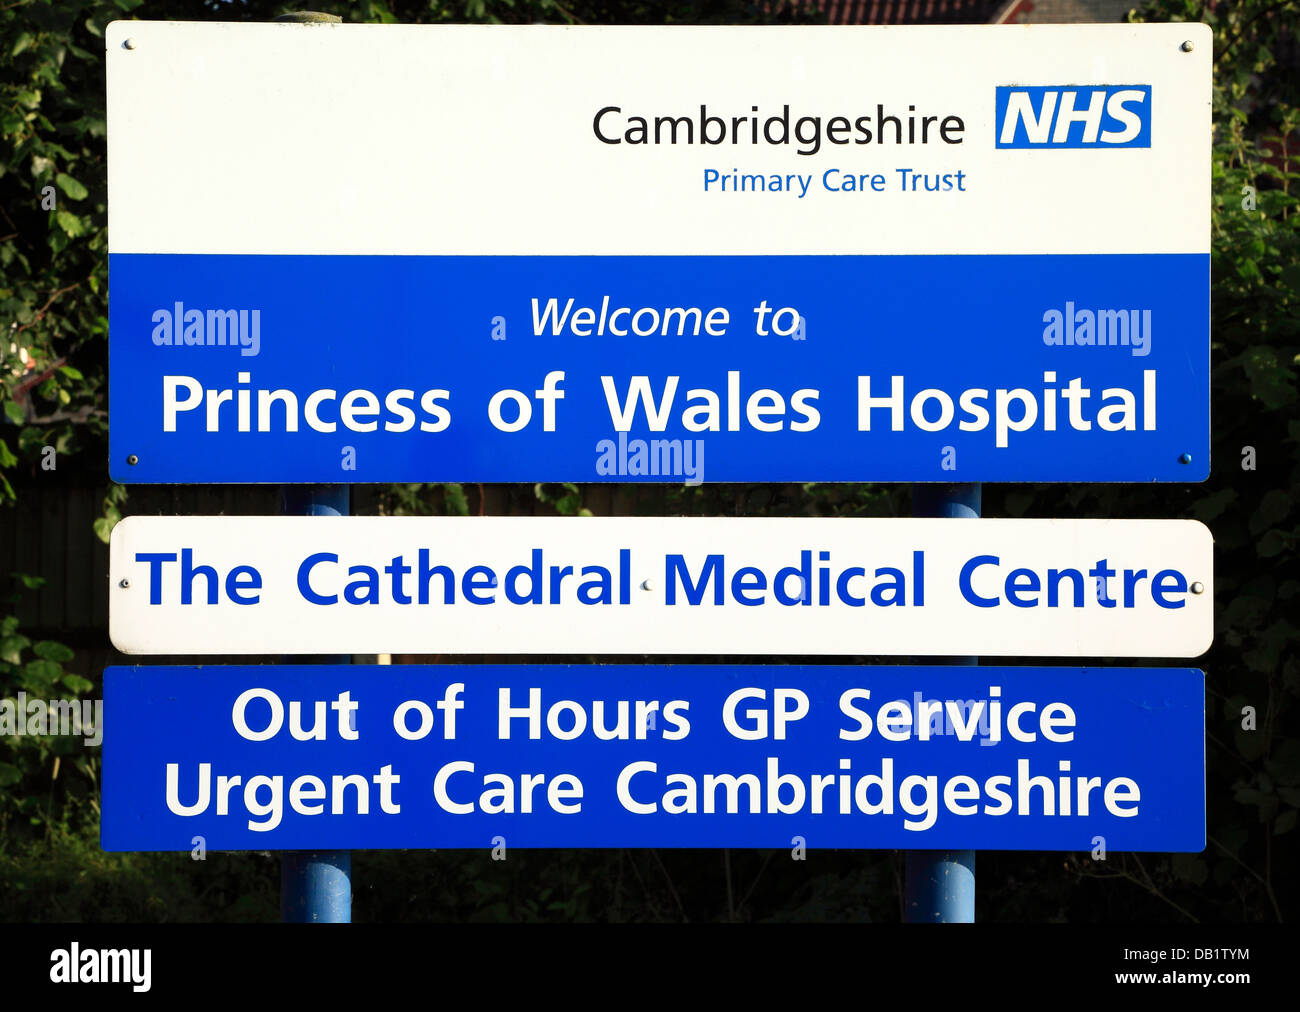 Ely, Princess of Wales Hospital, sign, Cambridgeshire NHS, Primary Care Trust, Cathedral Medical Centre England - Stock Image